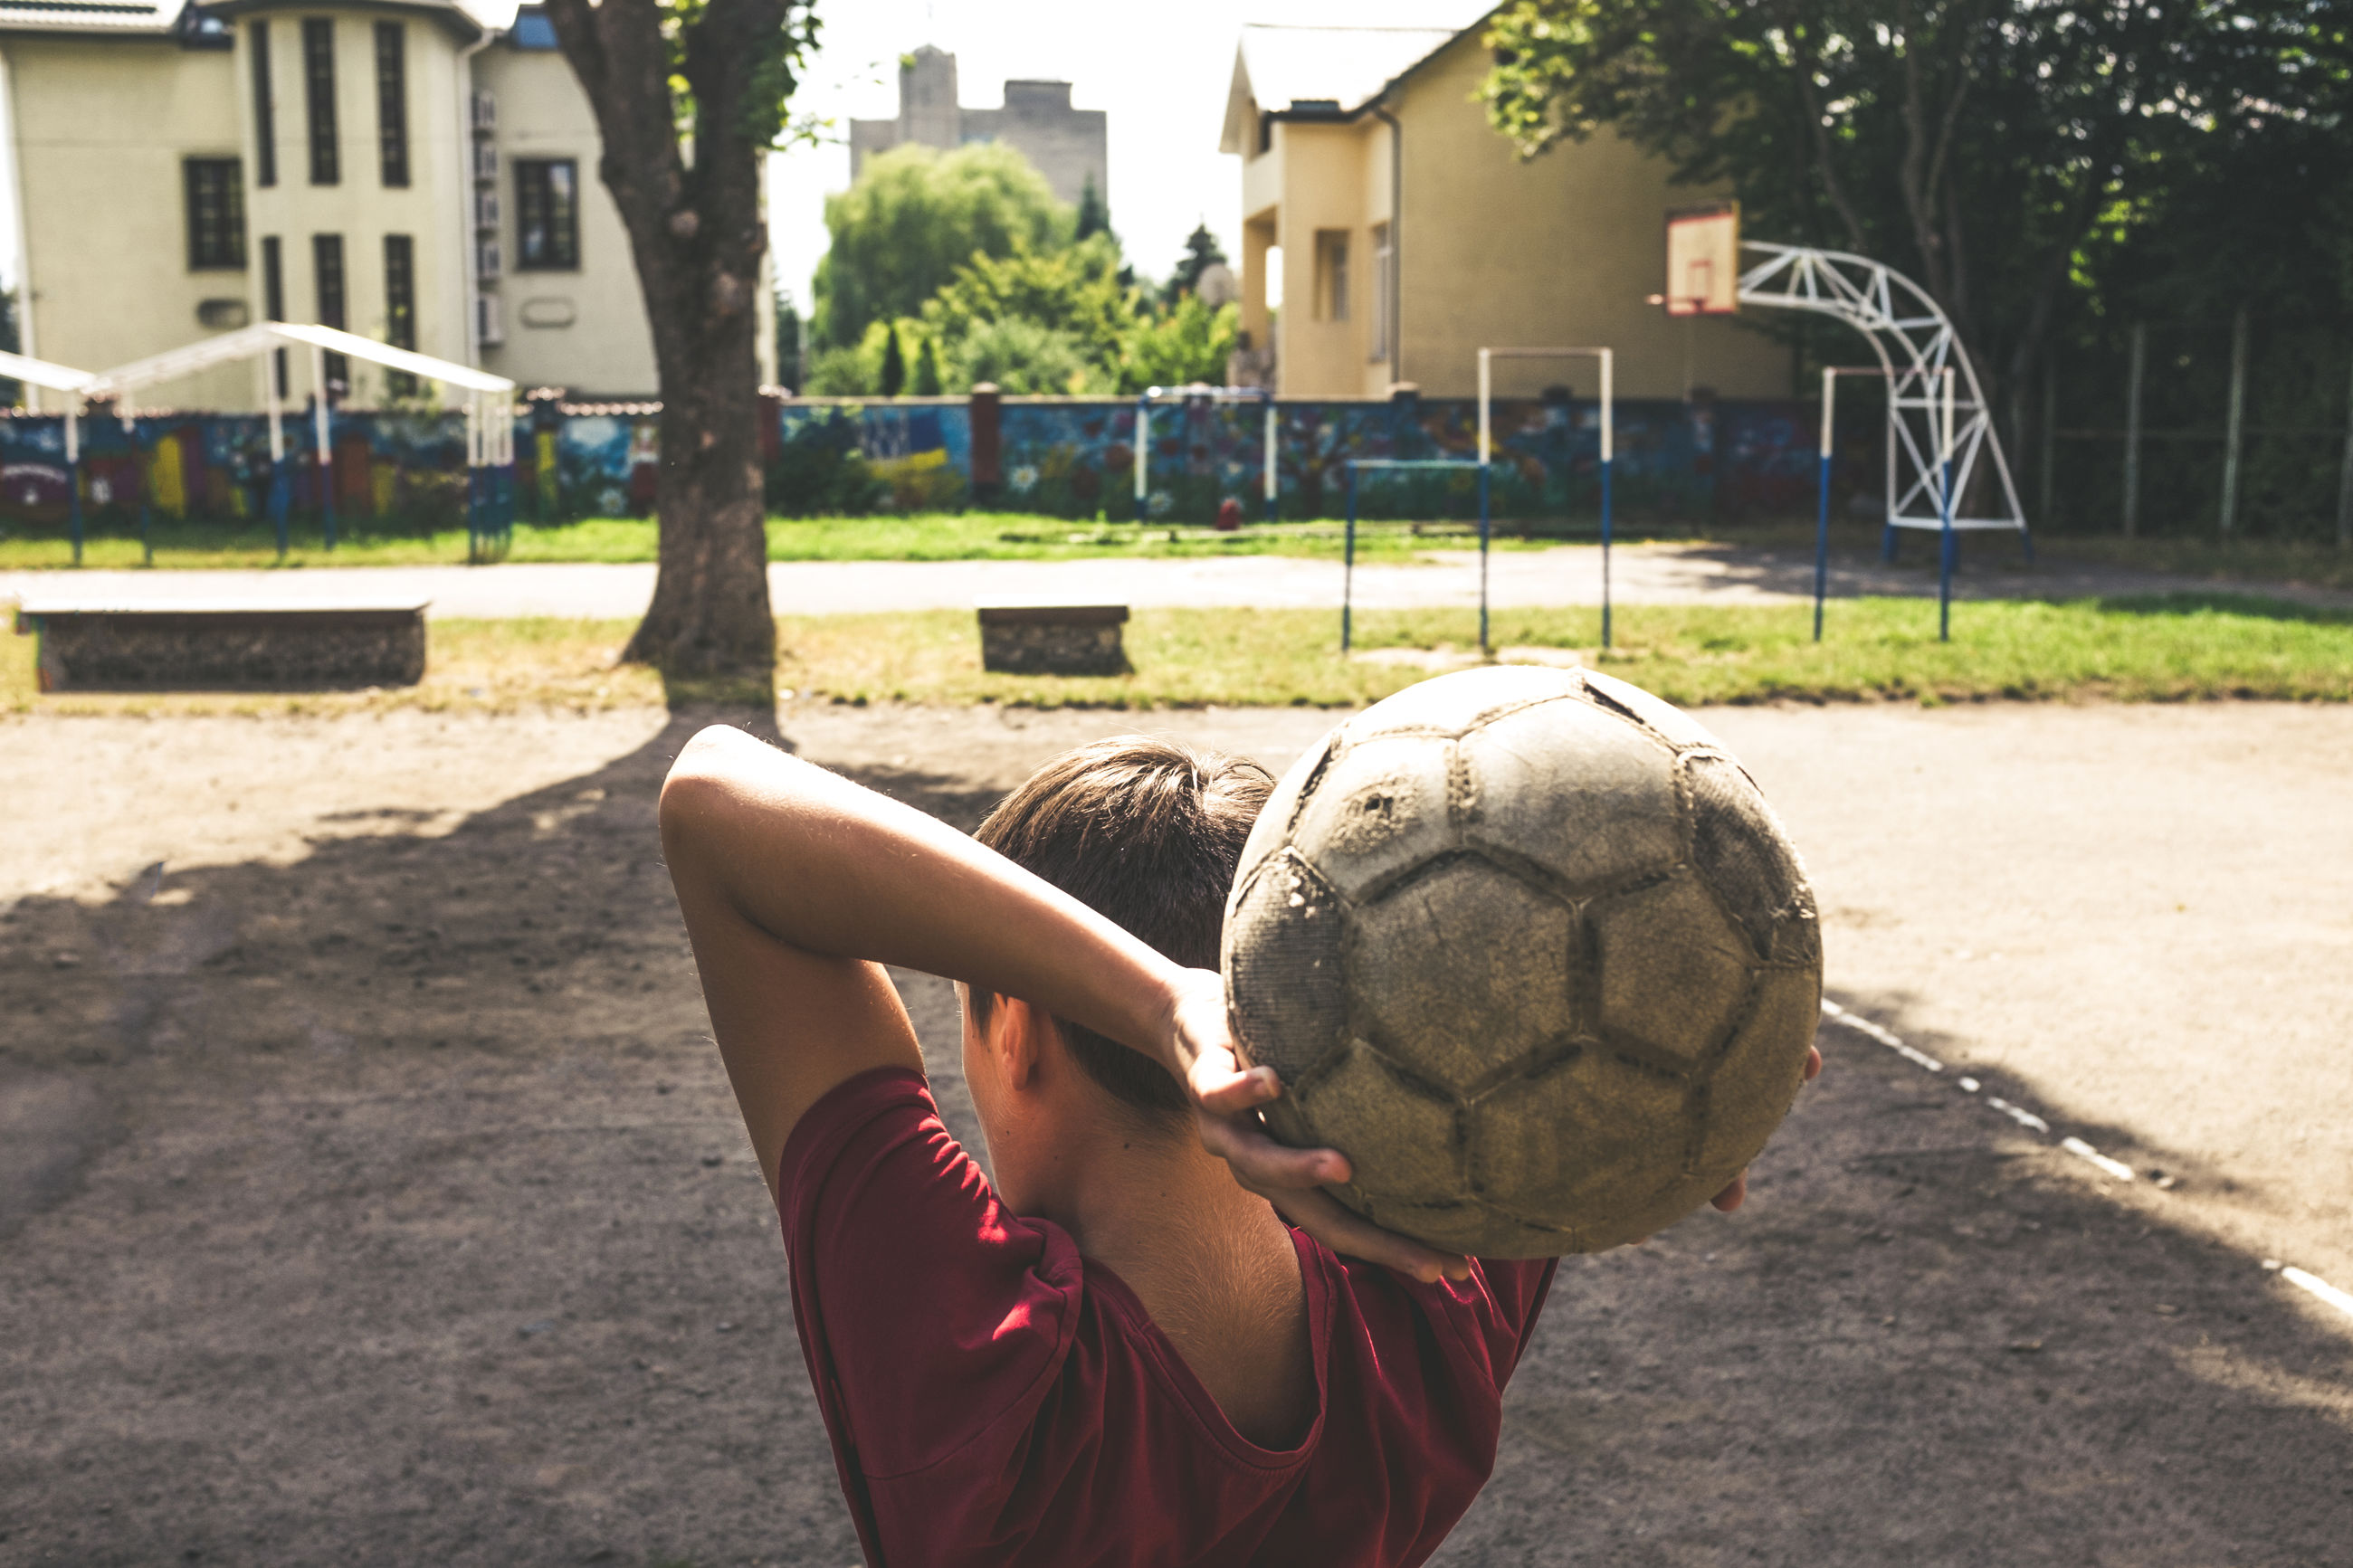 real people, soccer, one person, soccer ball, holding, sport, built structure, day, leisure activity, architecture, childhood, building exterior, human hand, ball, lifestyles, focus on foreground, playing, soccer field, outdoors, soccer player, close-up, court, basketball - sport, soccer uniform